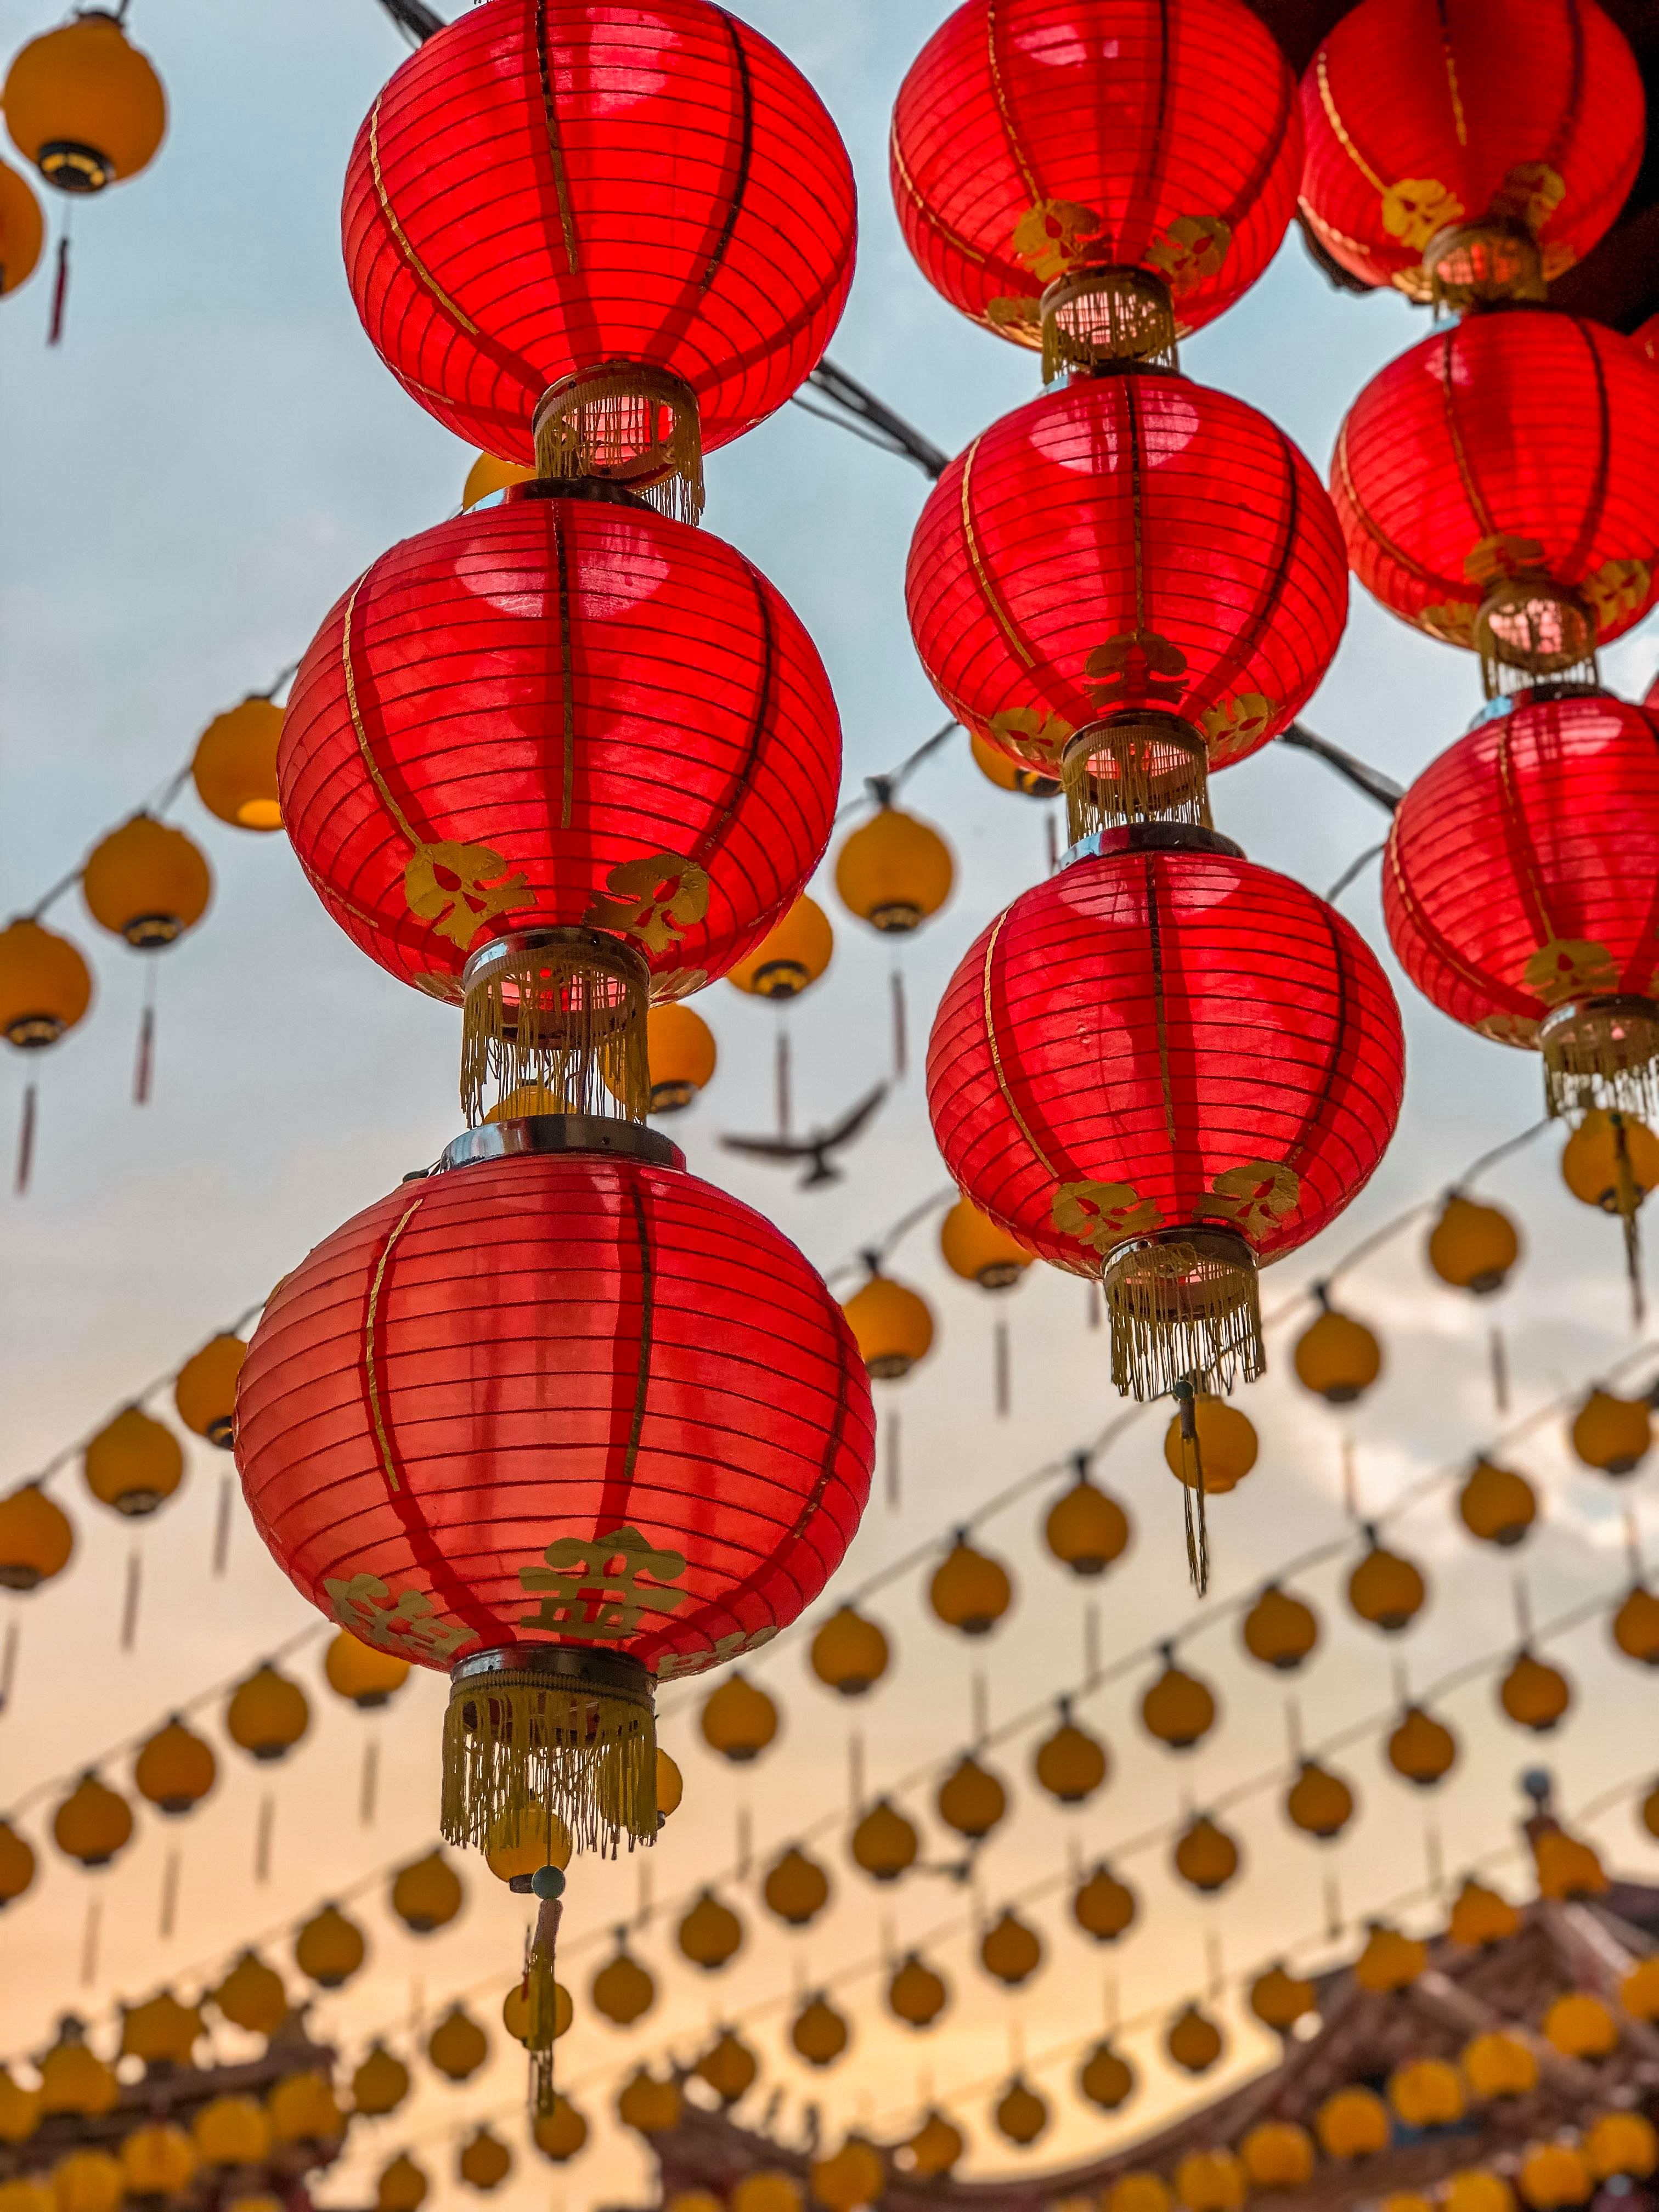 A bird in flight in between red chinese lanterns